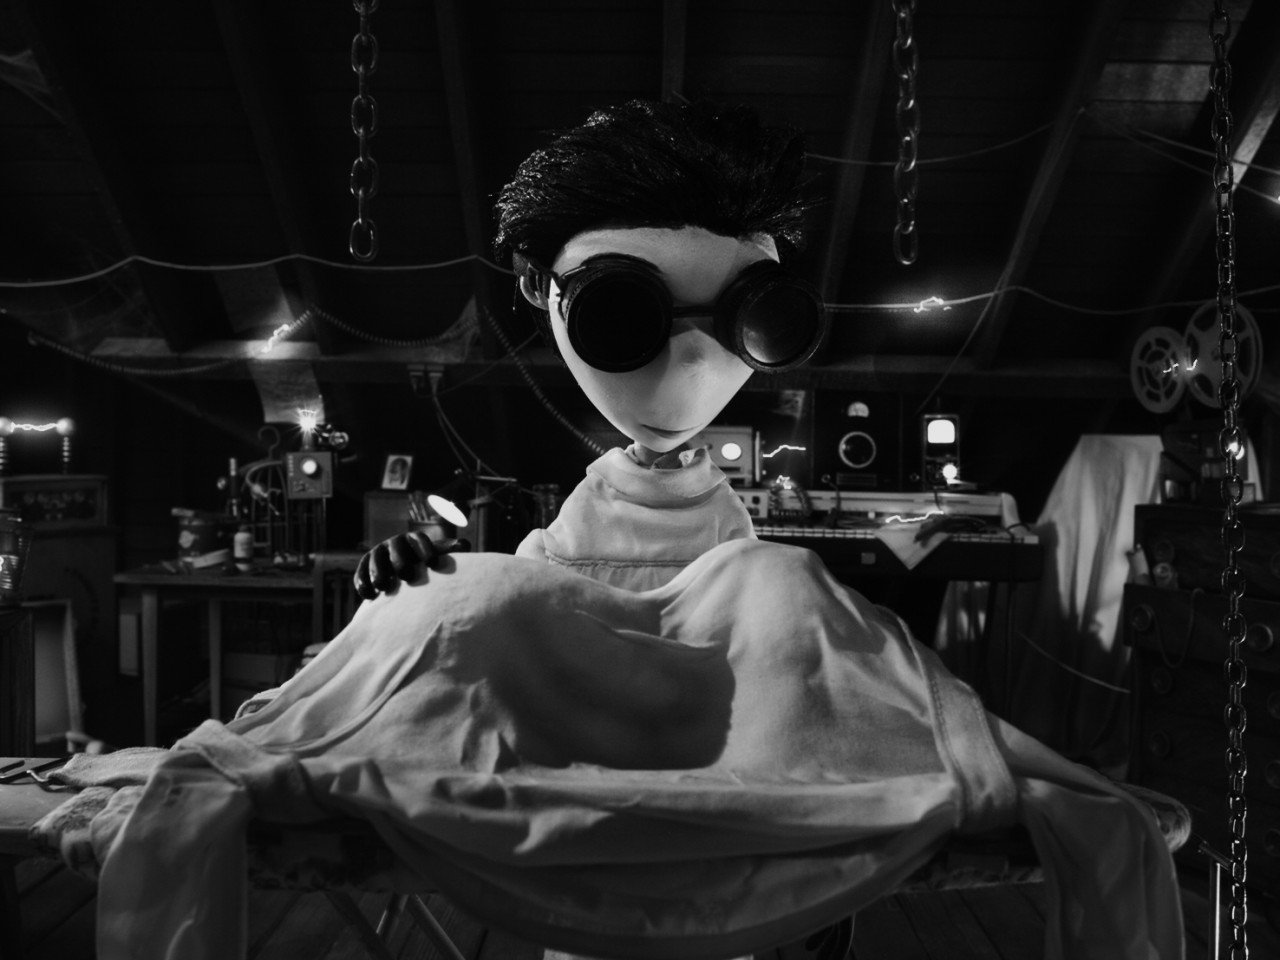 film-review-frankenweenie-.jpeg2-1280x960.jpg